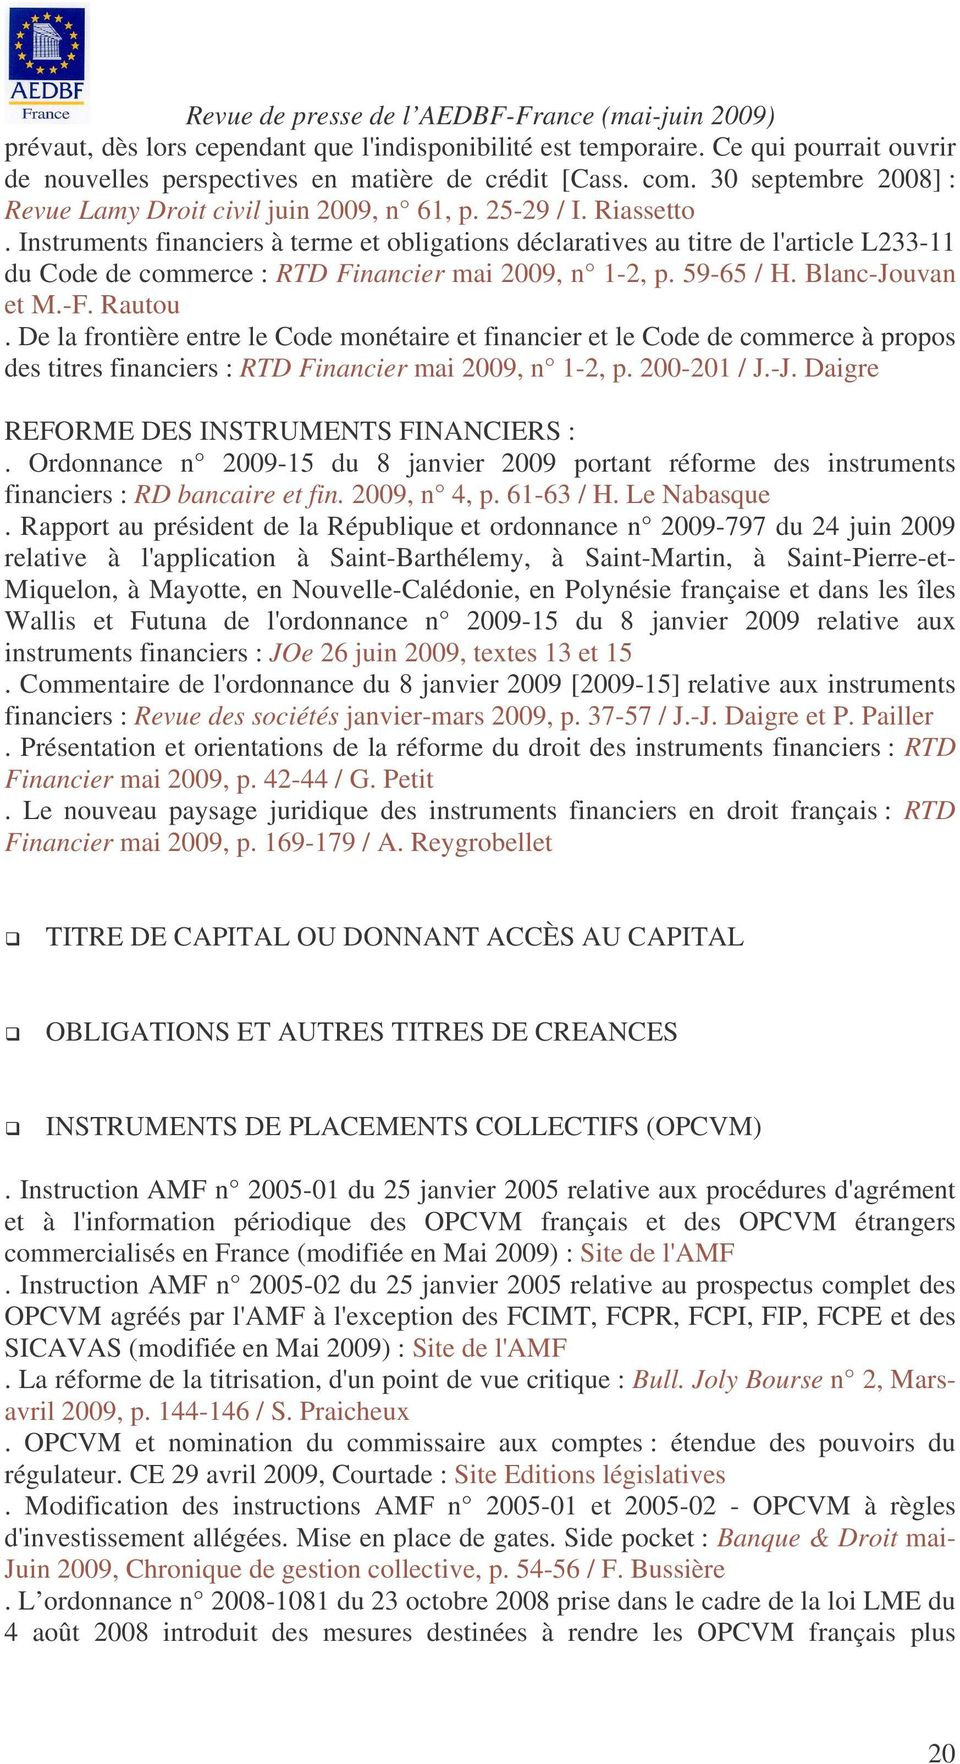 Instruments financiers à terme et obligations déclaratives au titre de l'article L233-11 du Code de commerce : RTD Financier mai 2009, n 1-2, p. 59-65 / H. Blanc-Jouvan et M.-F. Rautou.